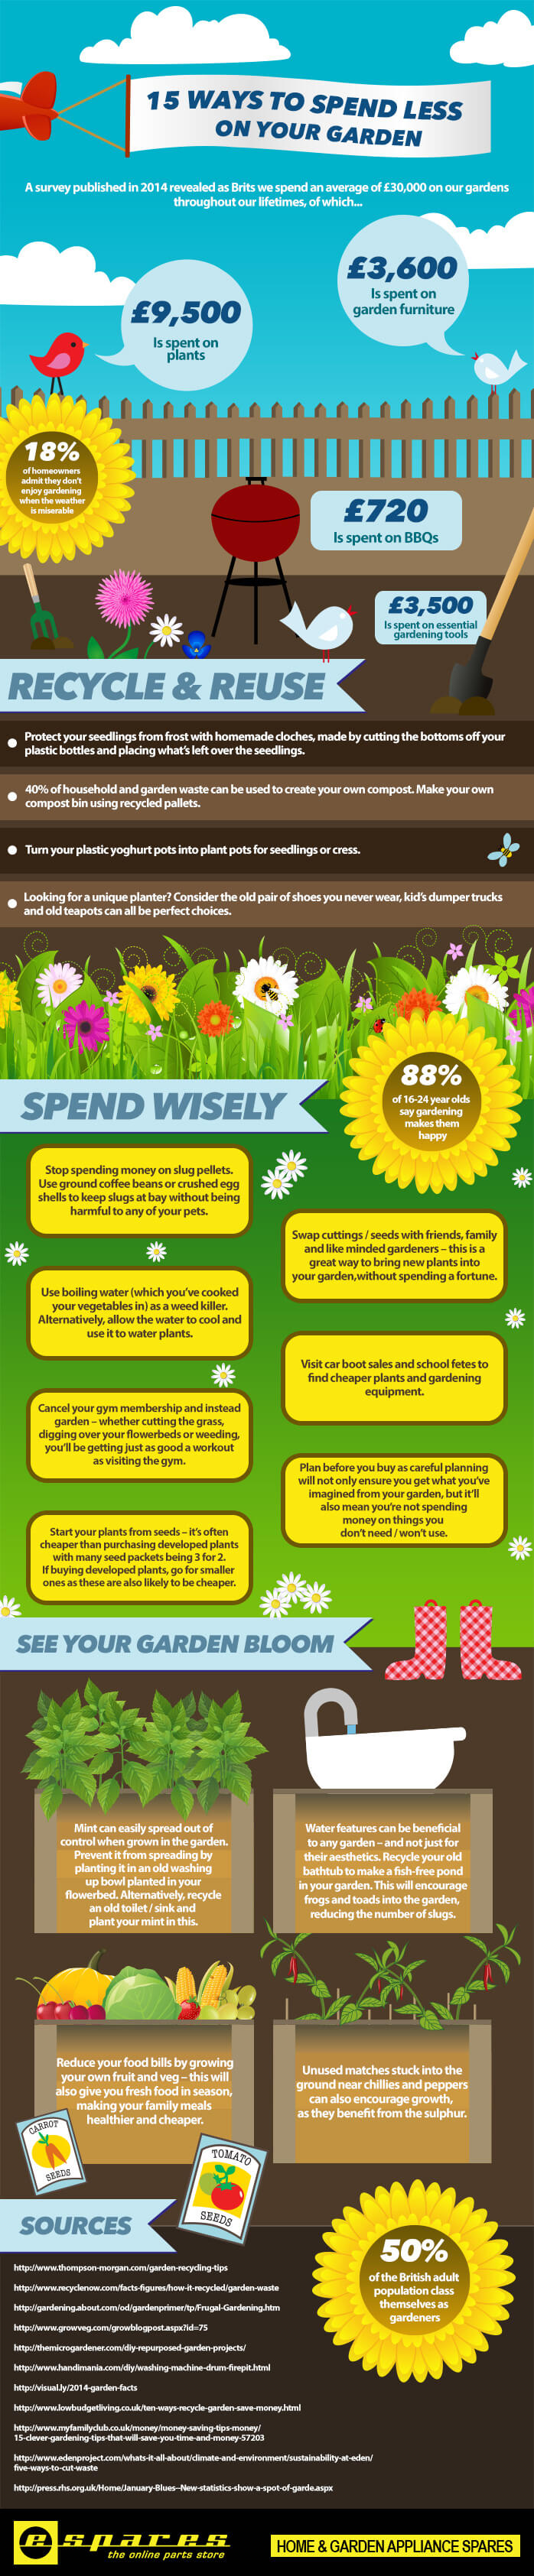 15-Ways-to-Spend-Less-on-Your-Garden